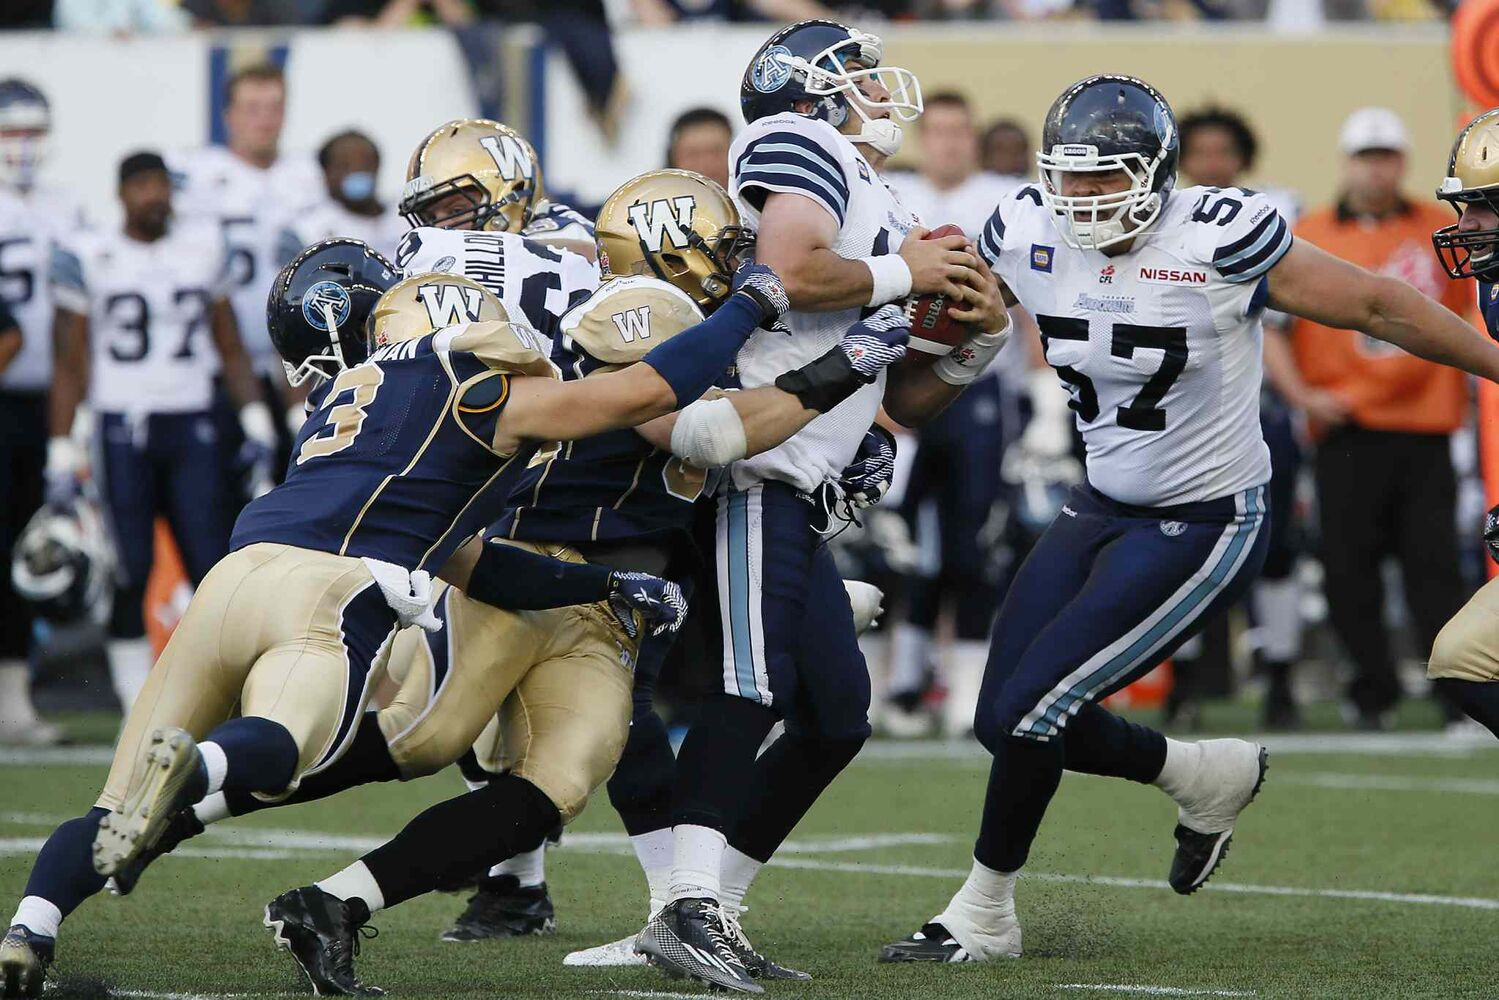 Winnipeg Blue Bombers defensive lineman Greg Peach is the lead tackler as the Bombers defence sacks Toronto Argonauts quarterback Mitchell Gale during the first half of a CFL pre-season game at Investors Group Field in Winnipeg Monday. (JOHN WOODS / WINNIPEG FREE PRESS)